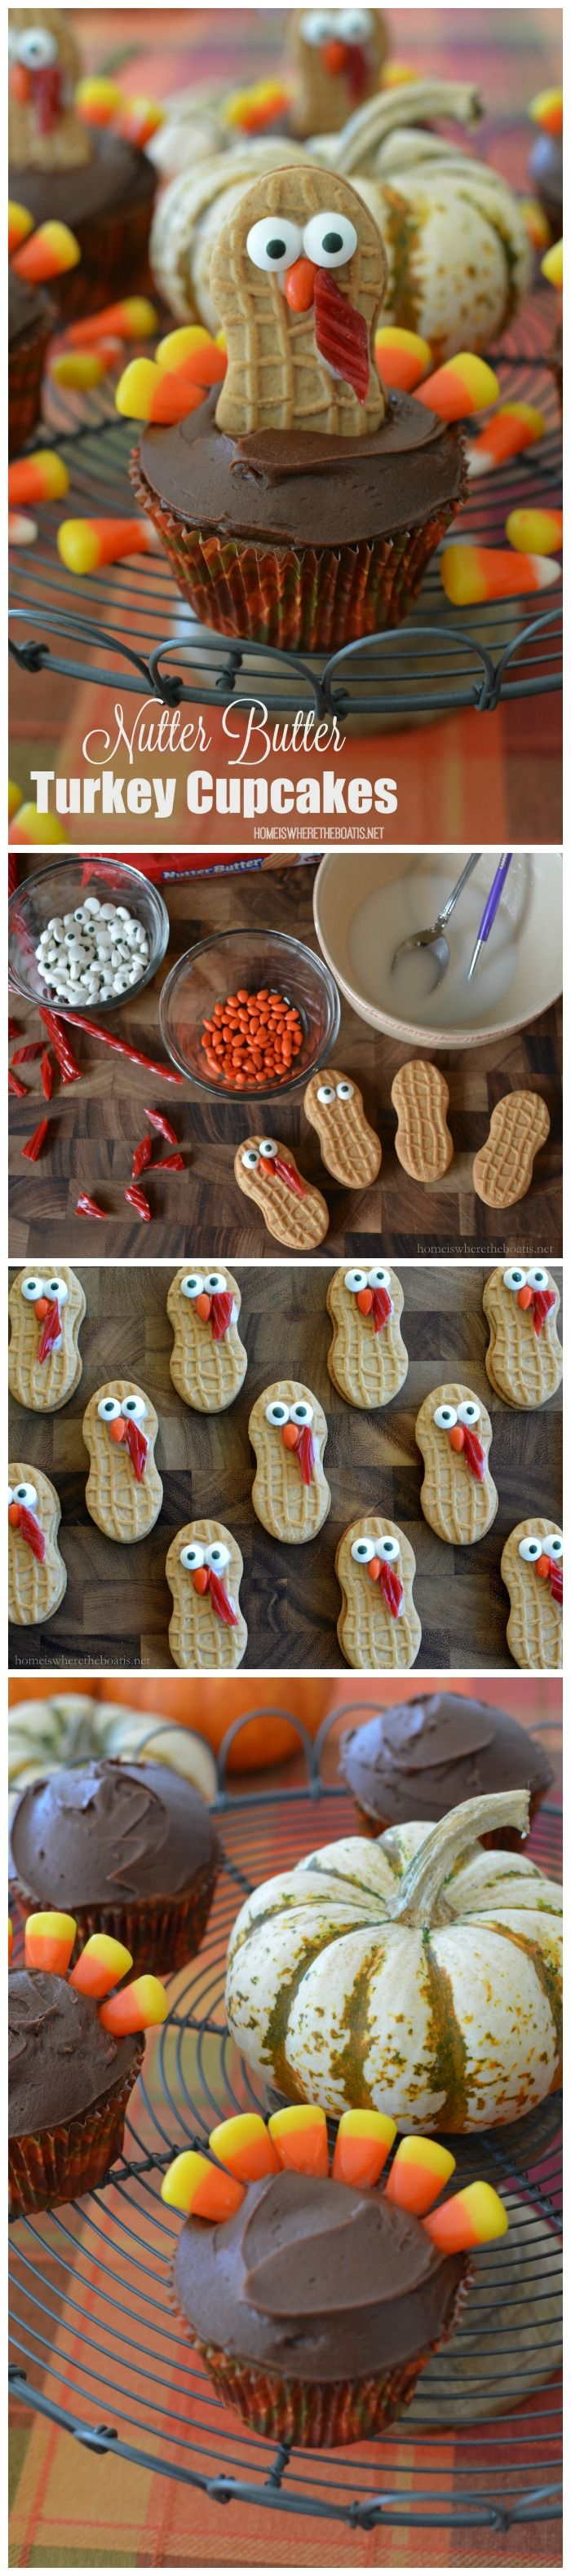 Nutter Butter Turkey Cupcakes, as fun to make as they are to eat! | homeiswheretheboatis.net #Thanksgiving